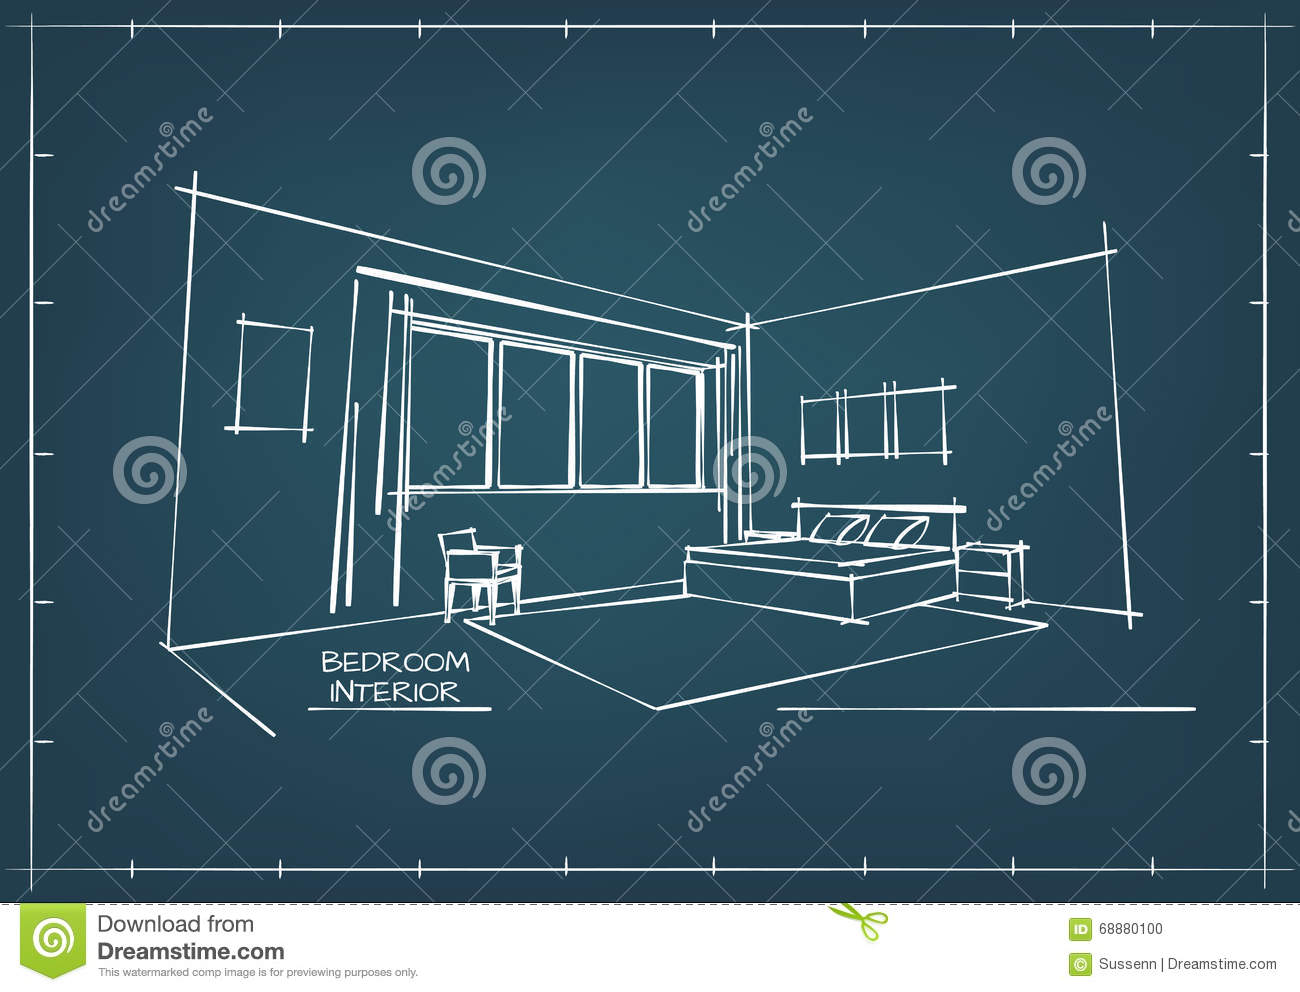 Bedroom drawing with color - Blueprint Interior Drawing Stock Photo